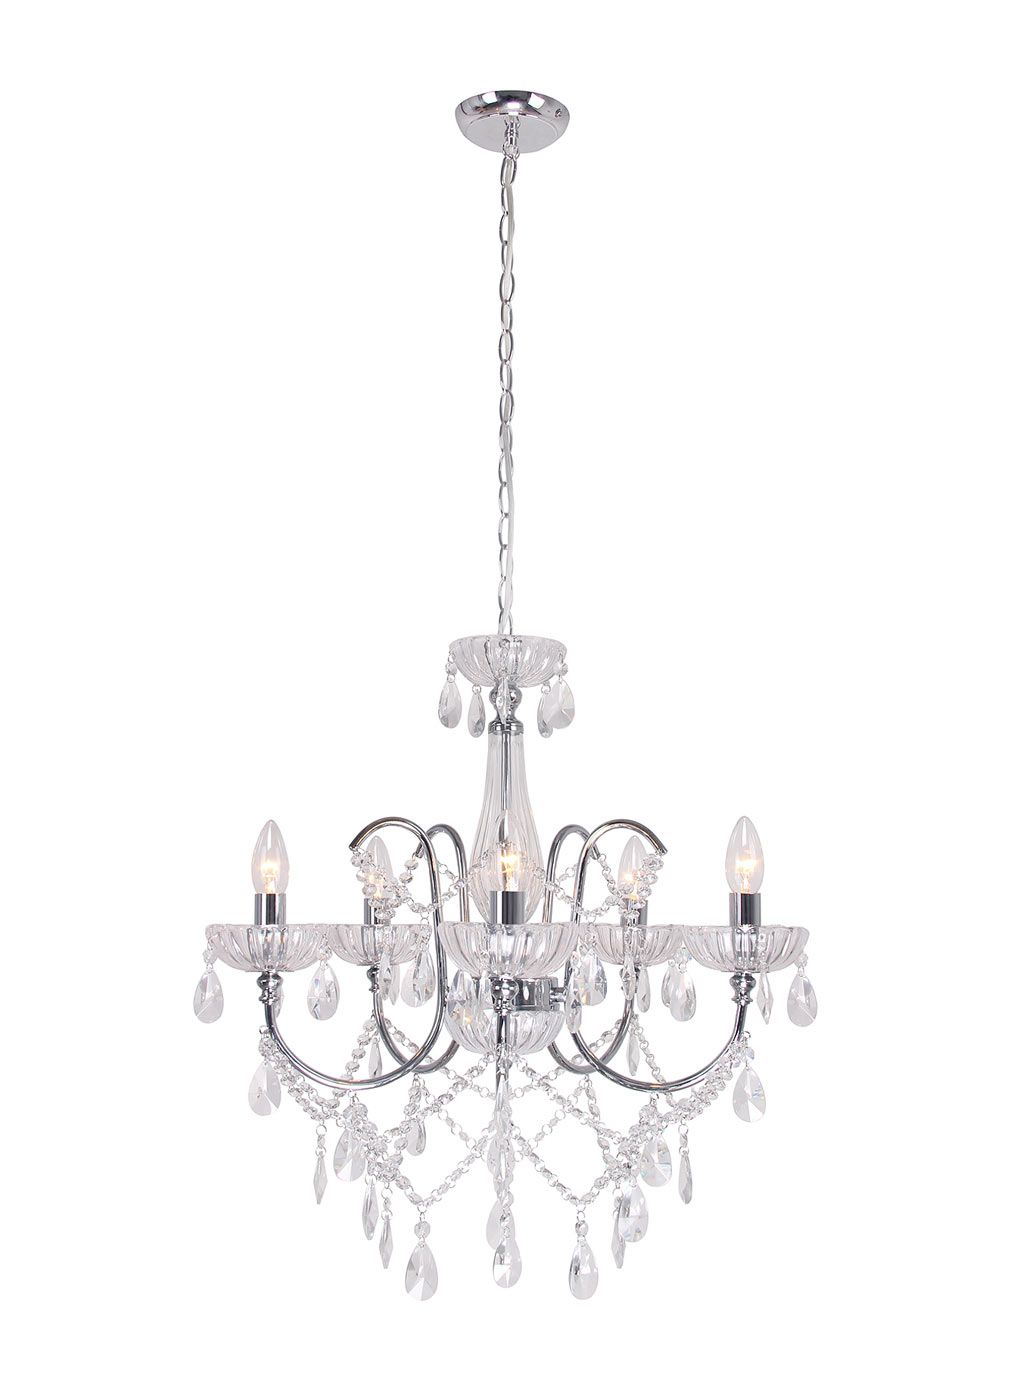 Bathroom Chandeliers Bhs edith chandelier - ceiling lights - home, lighting & furniture